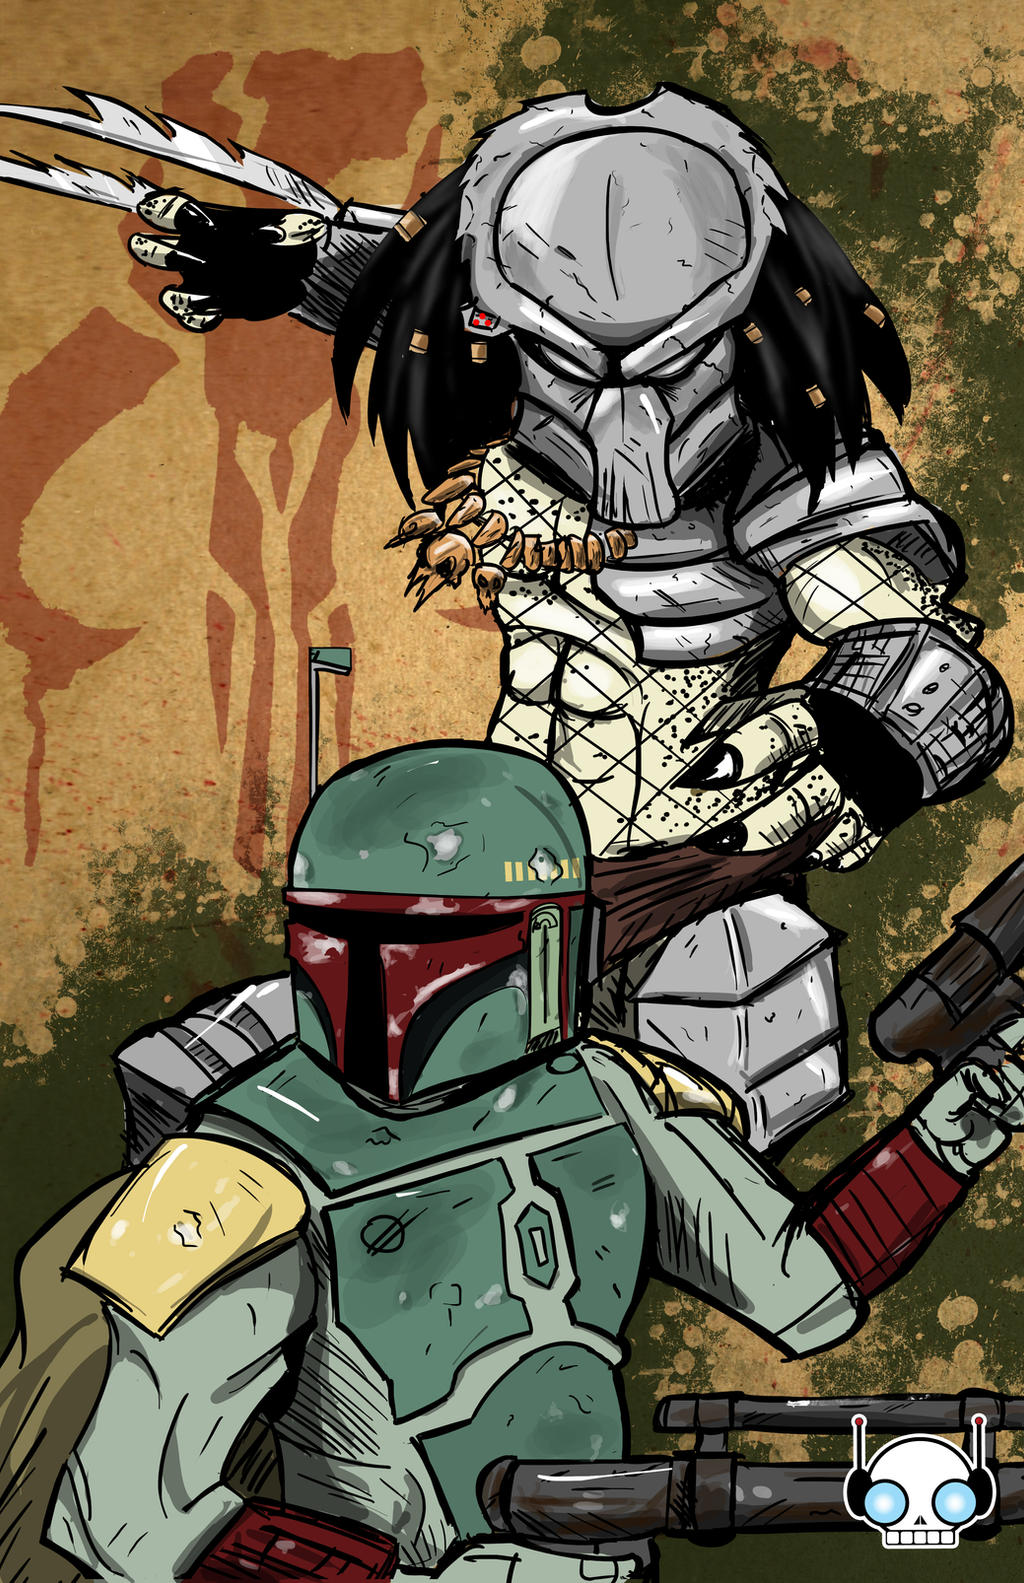 Boba Fett vs Predator by Requiem-Delacroix on DeviantArt